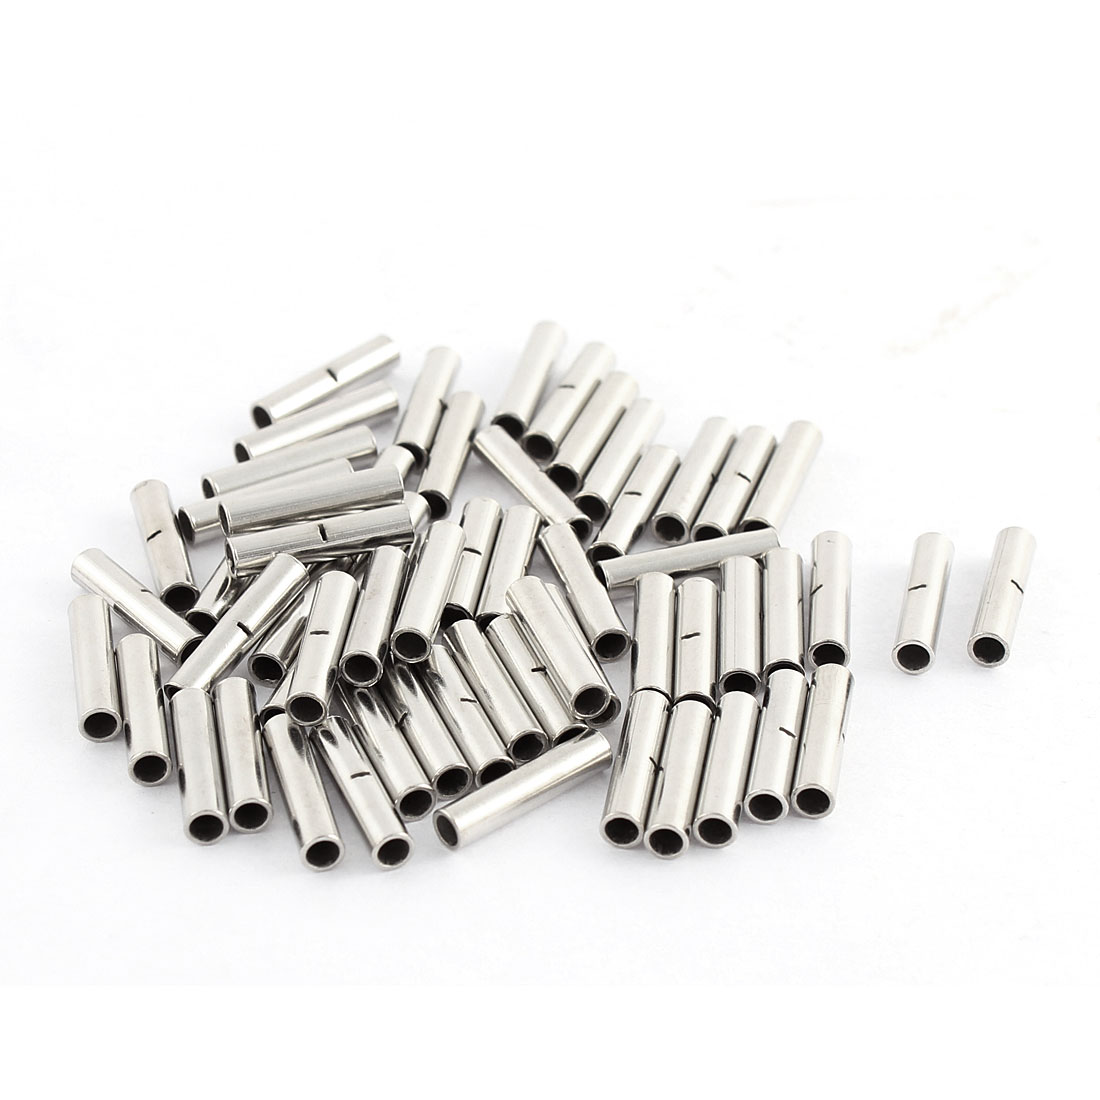 60pcs BN1-1 22-16 AWG Tubular Design Non-insulated Butt Connectors Cable Adapters